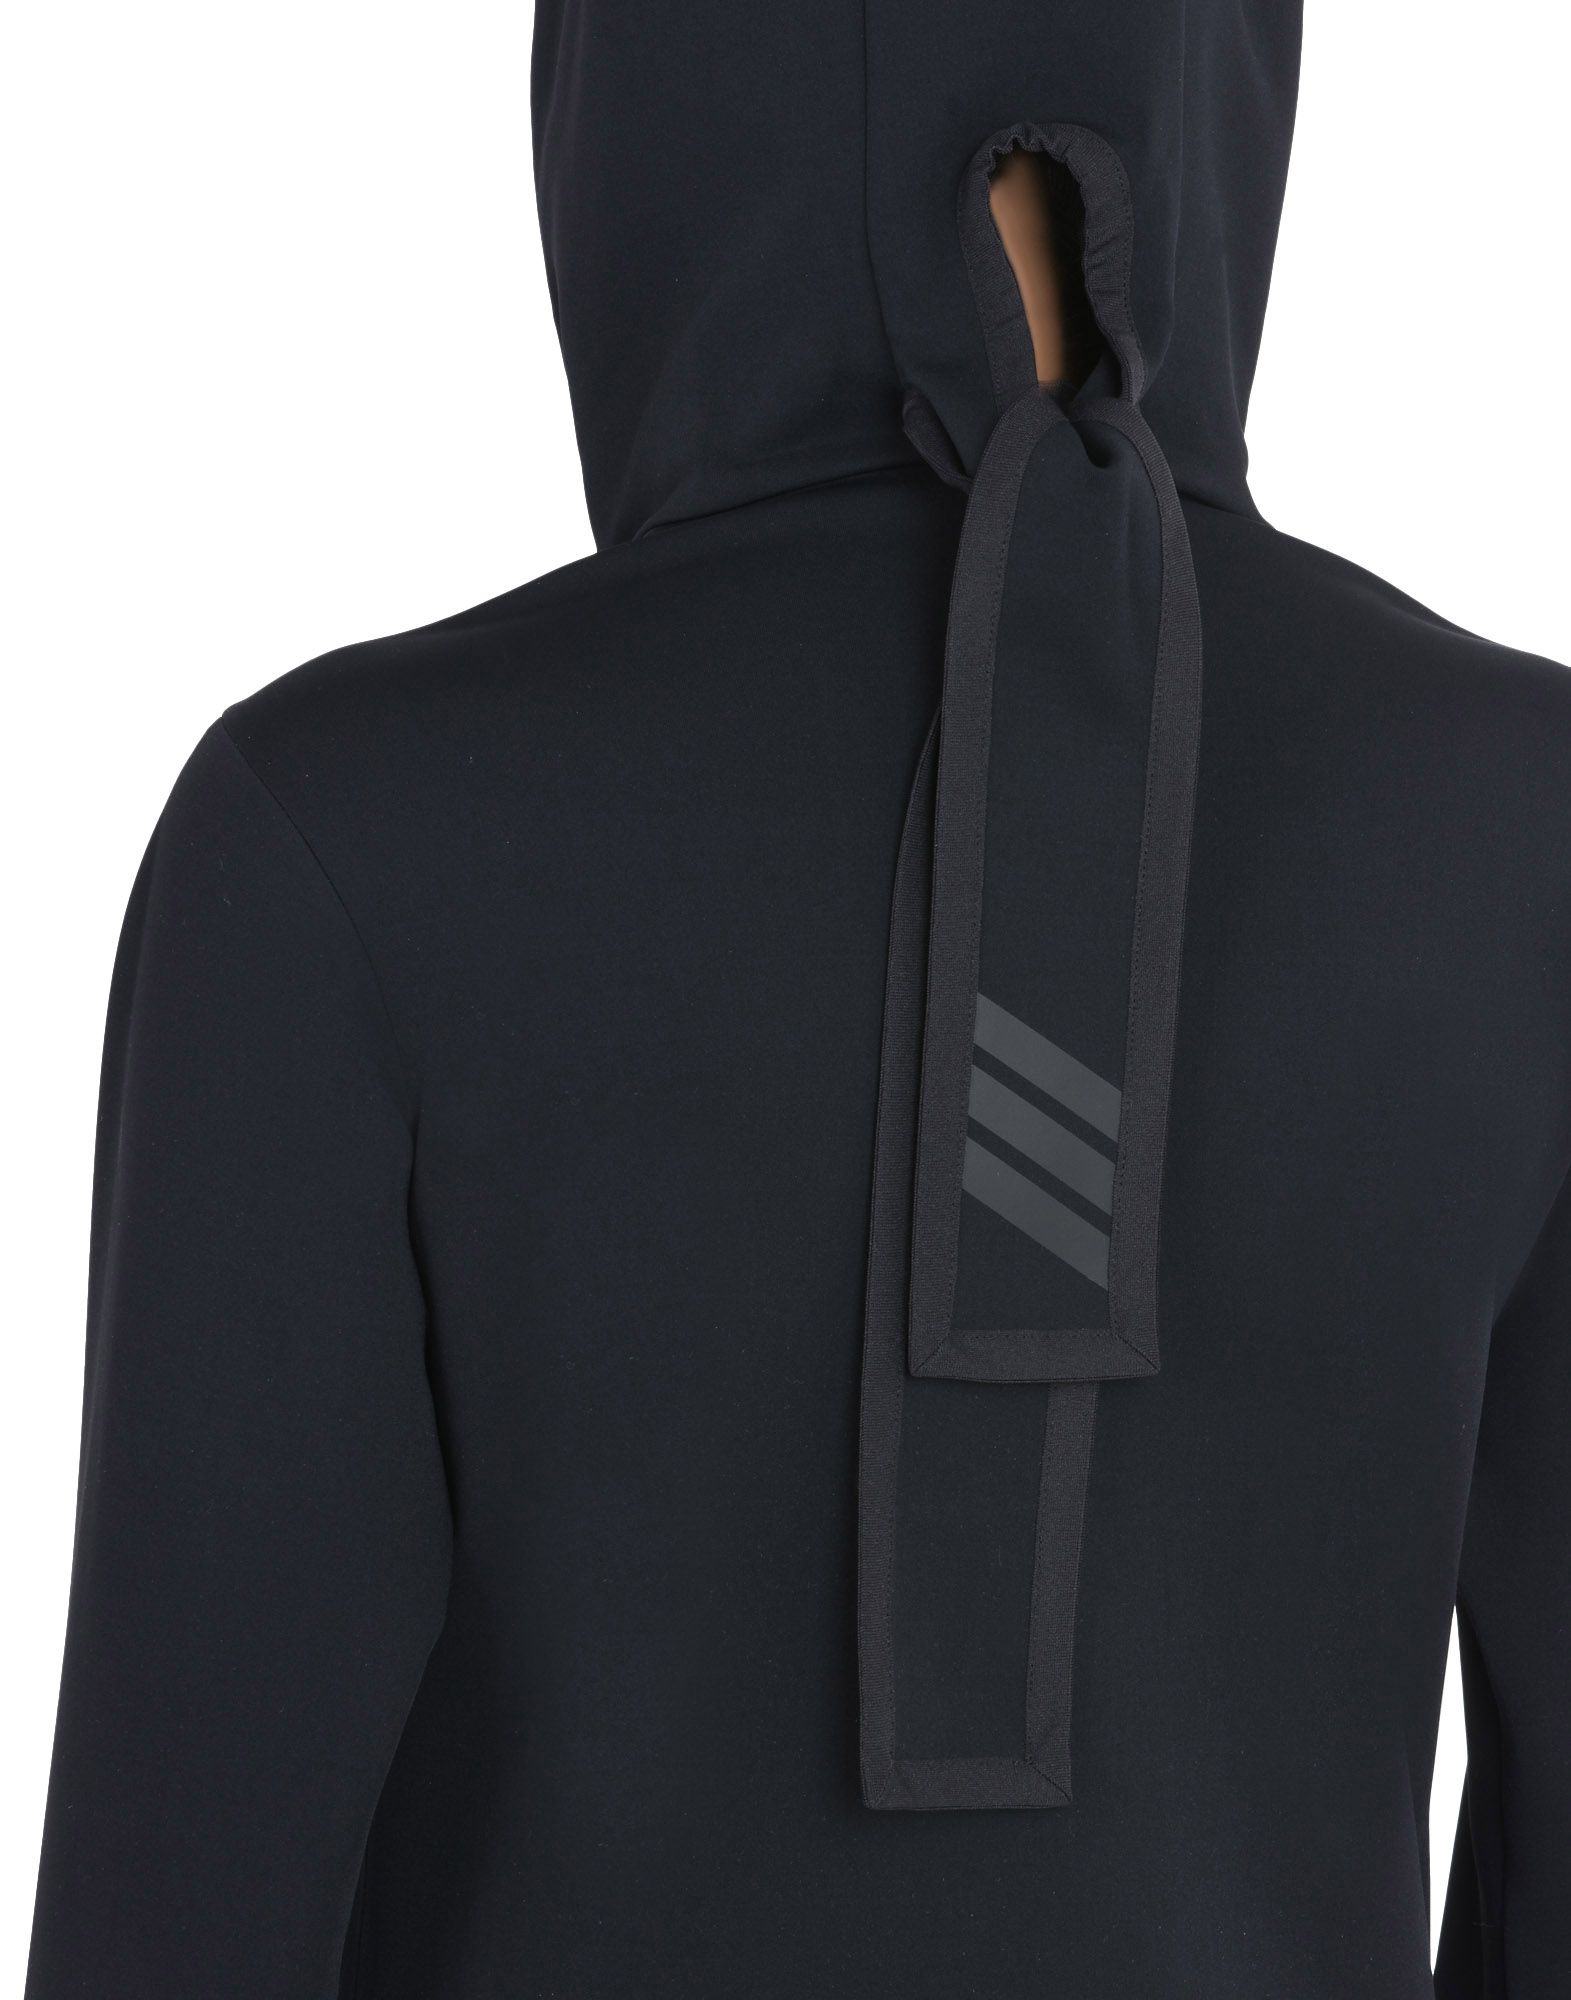 Y 3 LUX HOODED JACKET Black for Women | Adidas Y-3 Official Store